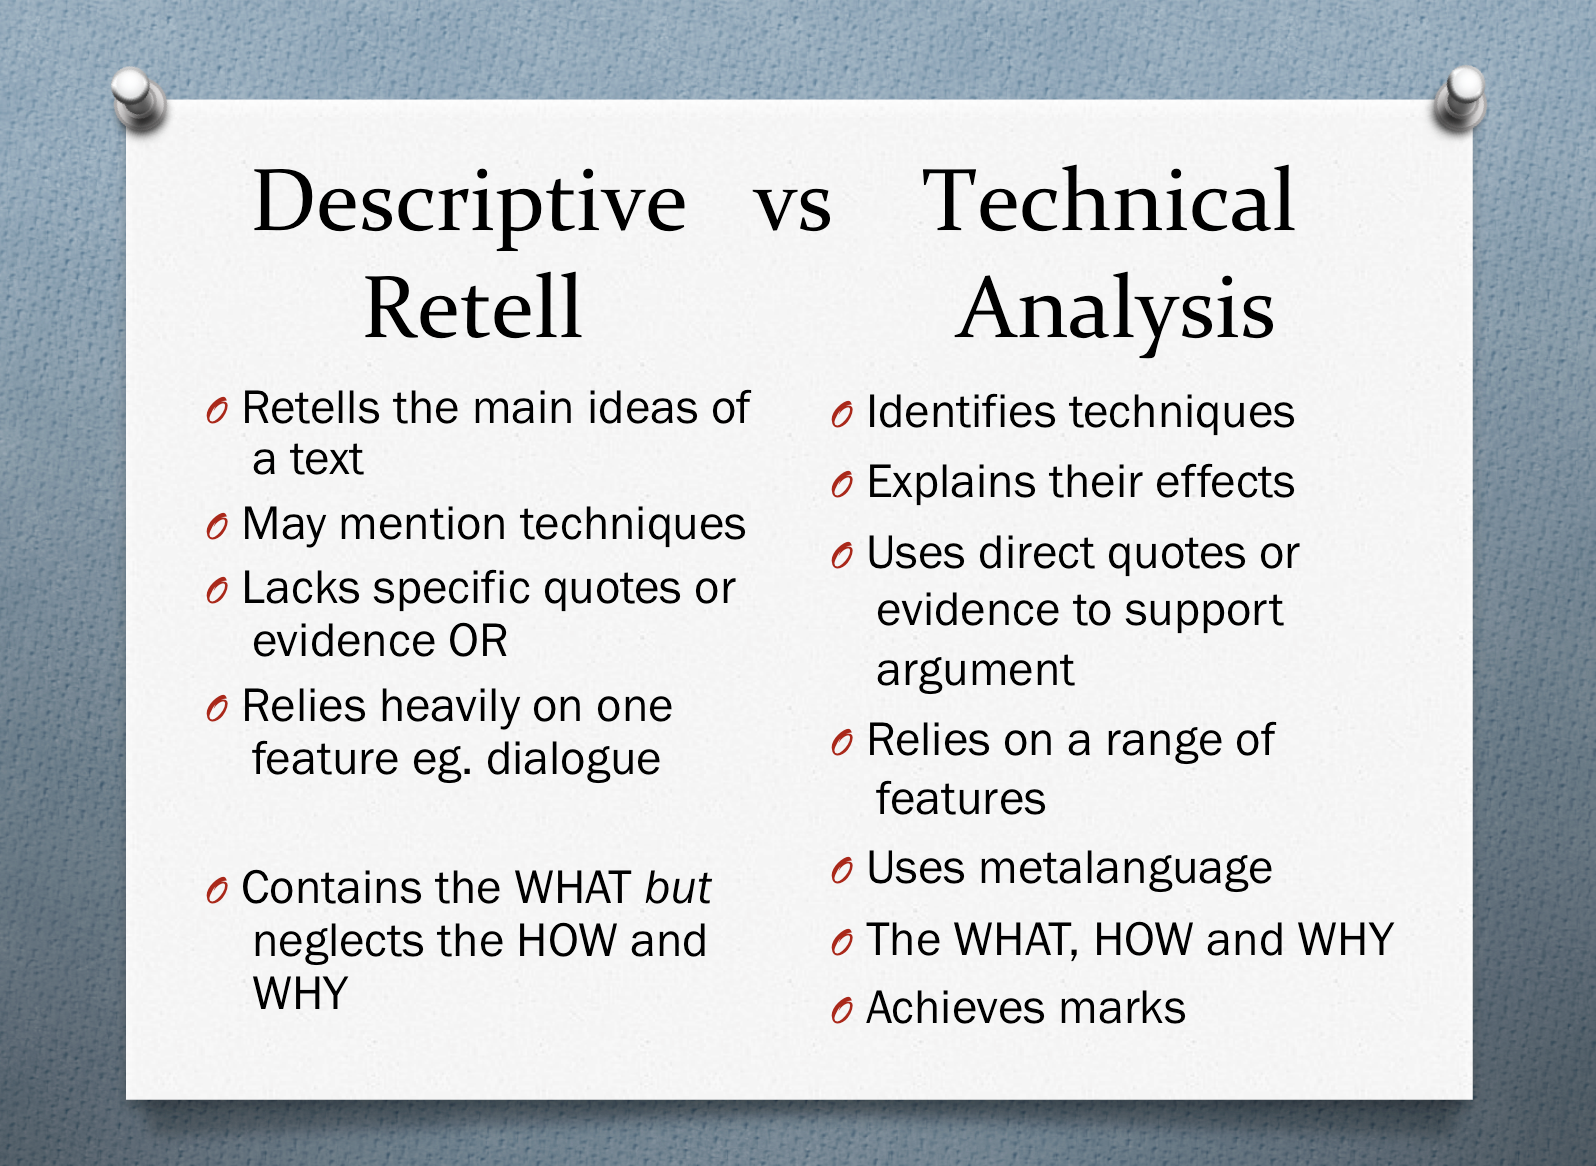 difference between analytical and descriptive thesis statements